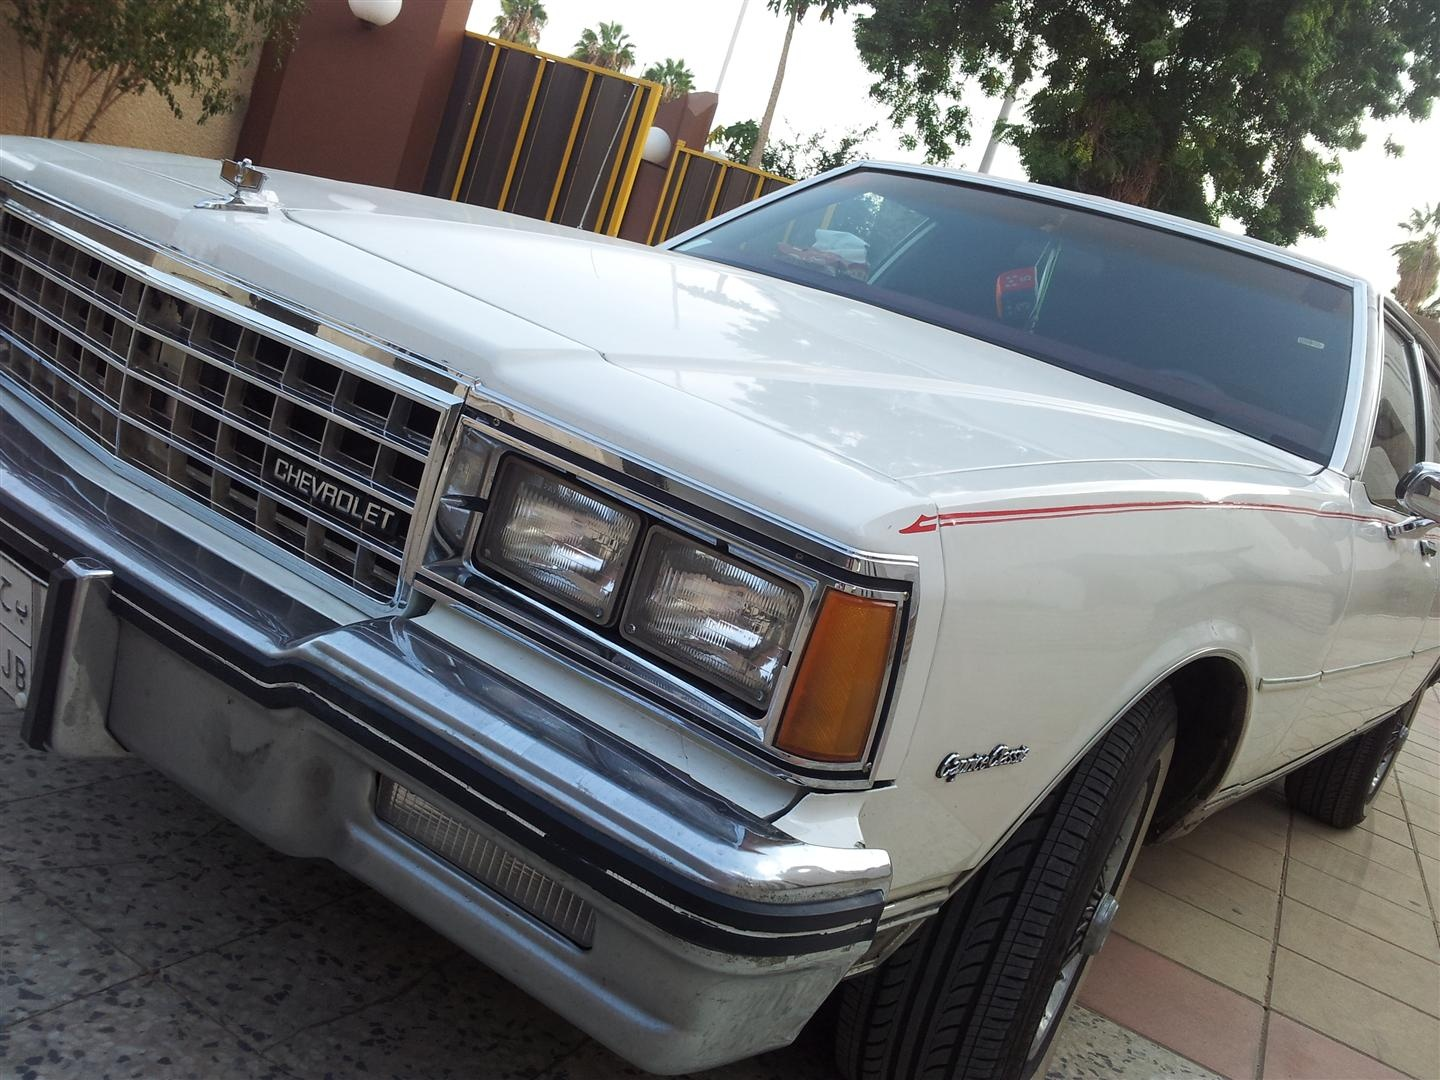 hight resolution of 1984 chevrolet caprice overview